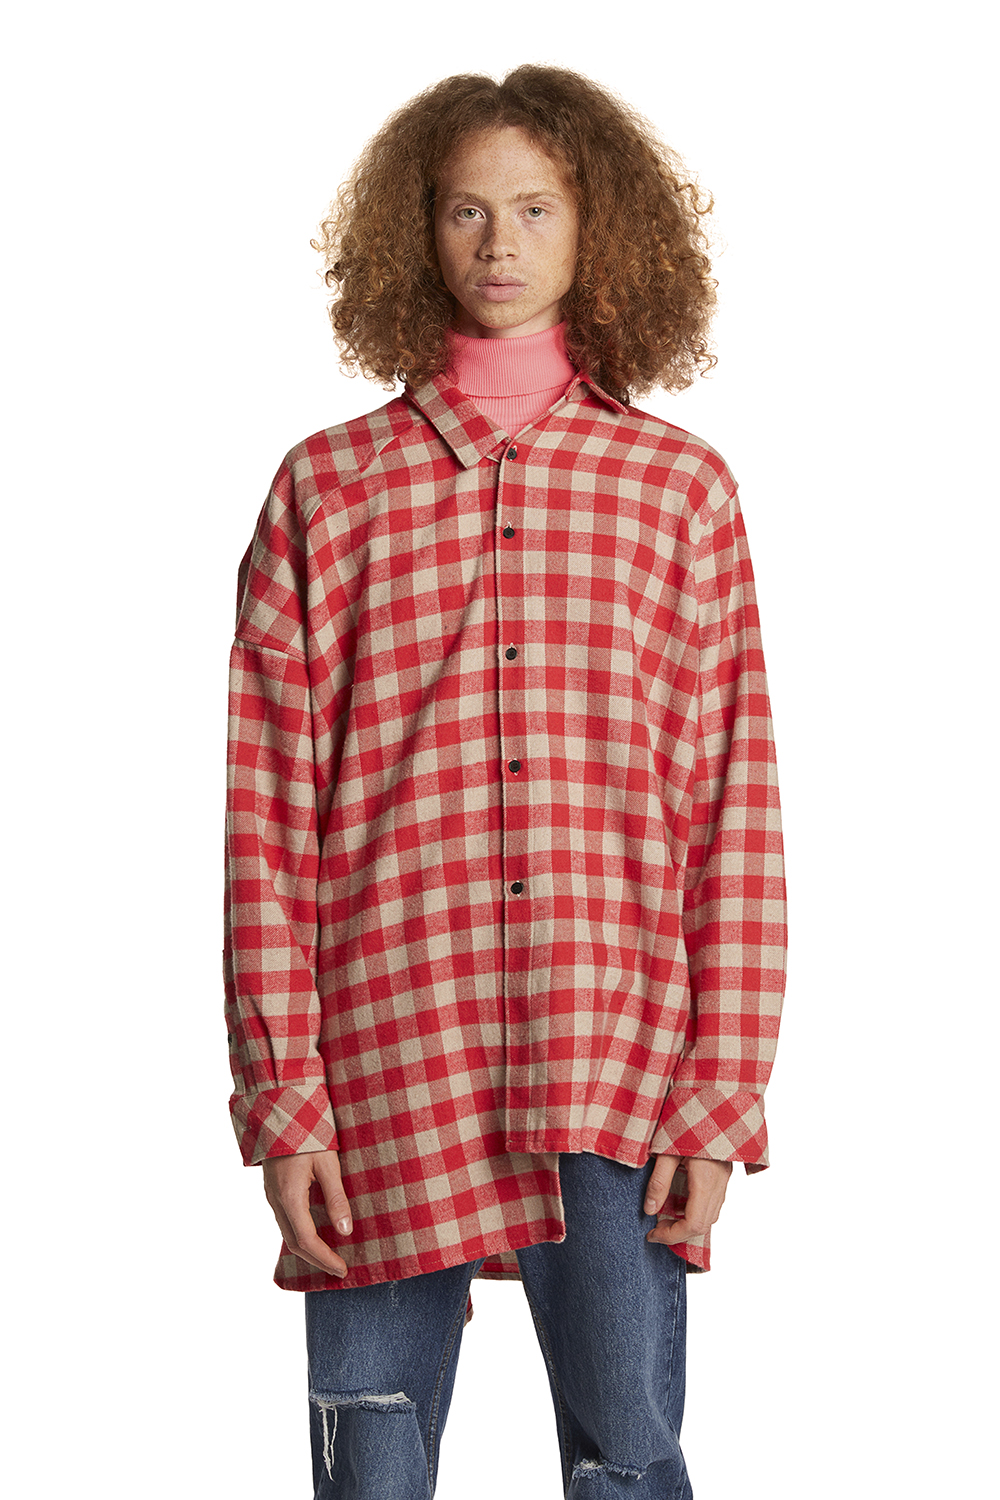 (SAMPLE) Unbalanced Sleeve Check Shirts